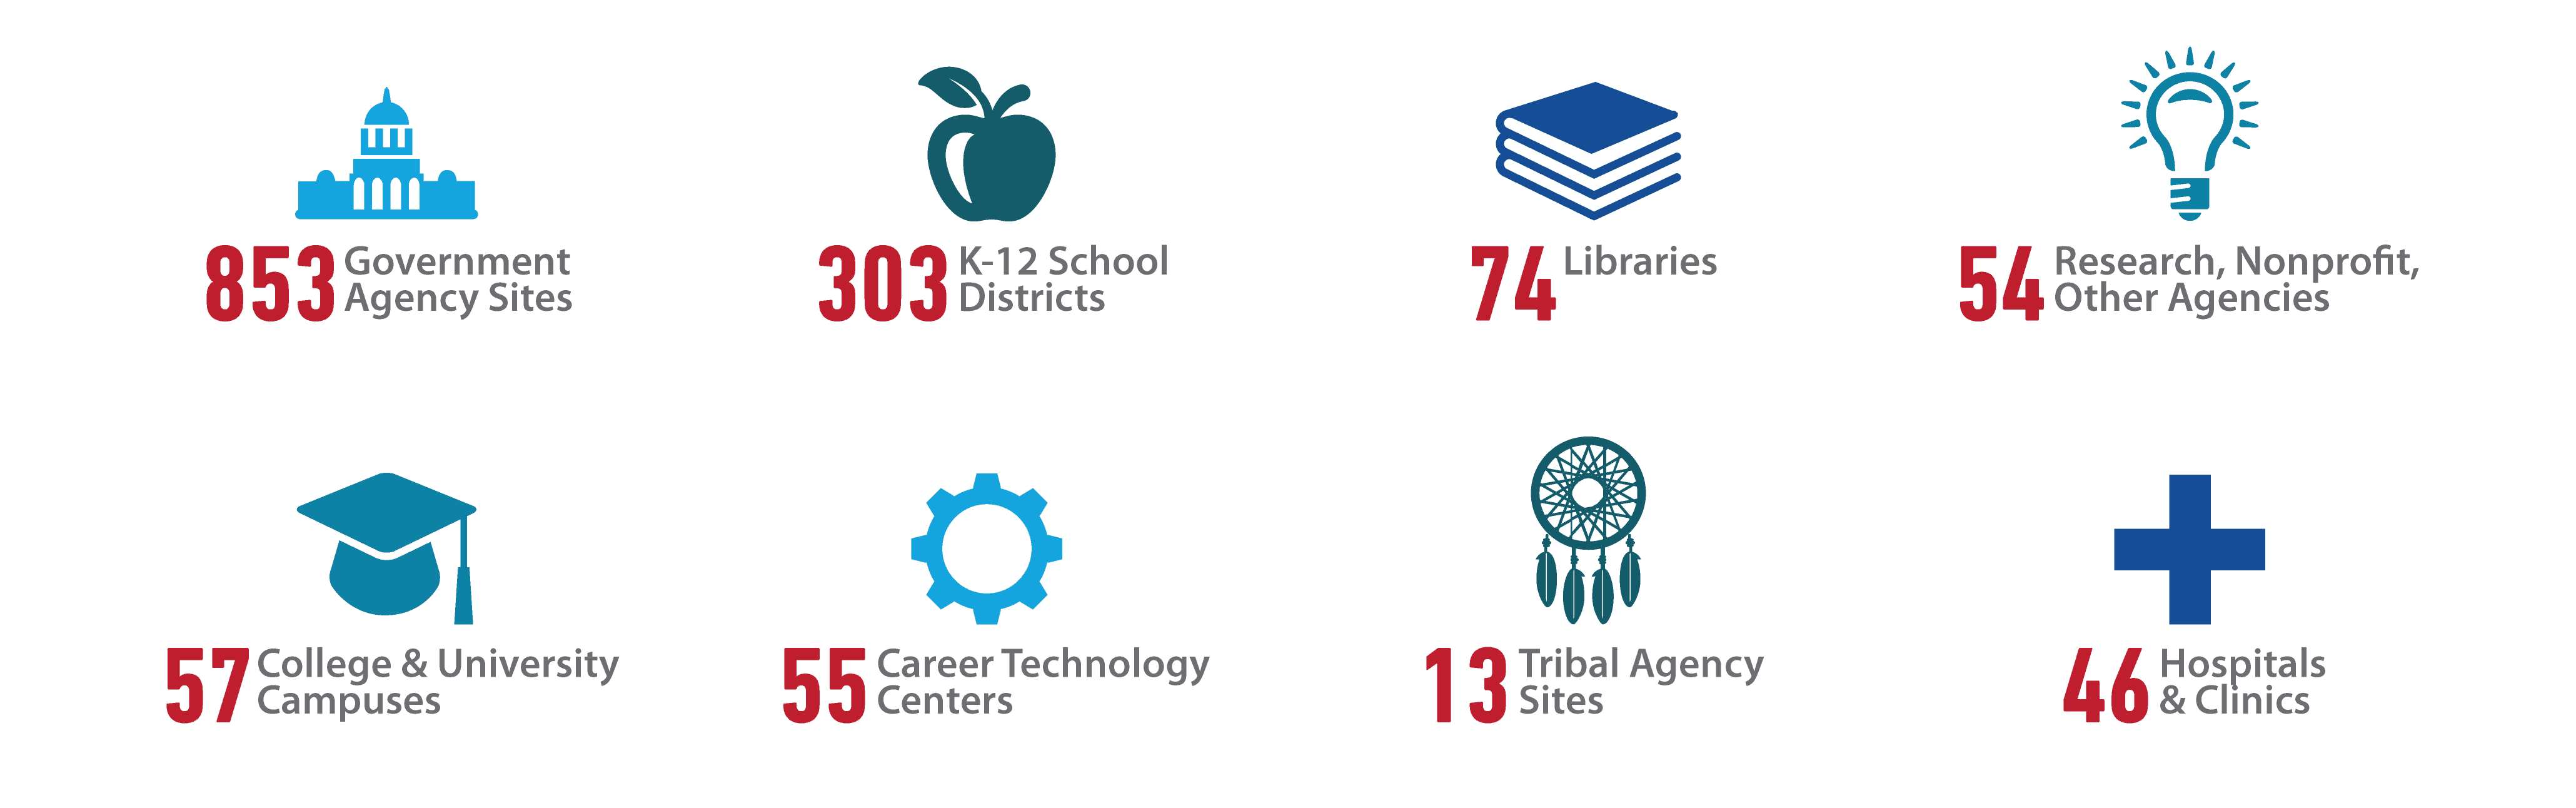 853 Government Agency Sites, 303 K-12 School Districts, 74 Libraries, 54 Research, Nonprofit, Other Agencies, 57 College & University Campuses, 55 Career Technology Centers, 13 Tribal Agency Sites, 46 Hospital & Clinics